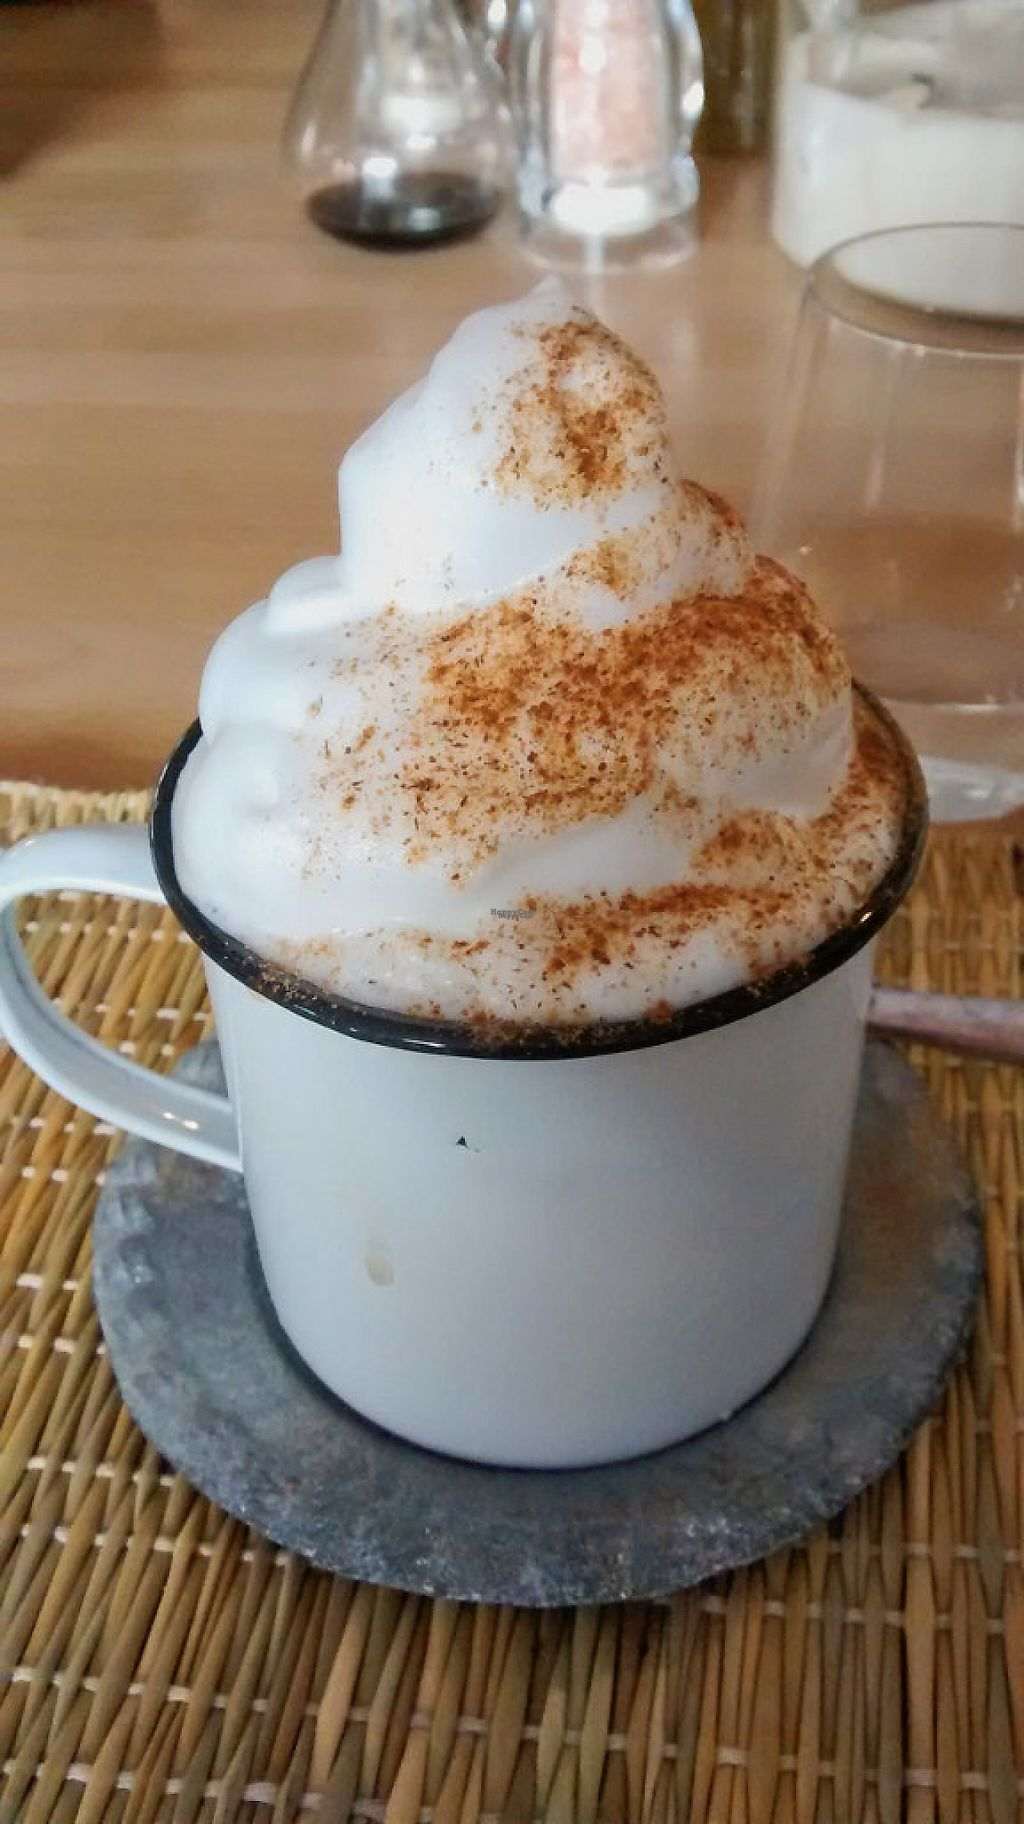 """Photo of Joy Healthyfood  by <a href=""""/members/profile/JonJon"""">JonJon</a> <br/>Chai latte with coconut milk <br/> December 8, 2016  - <a href='/contact/abuse/image/79775/198270'>Report</a>"""